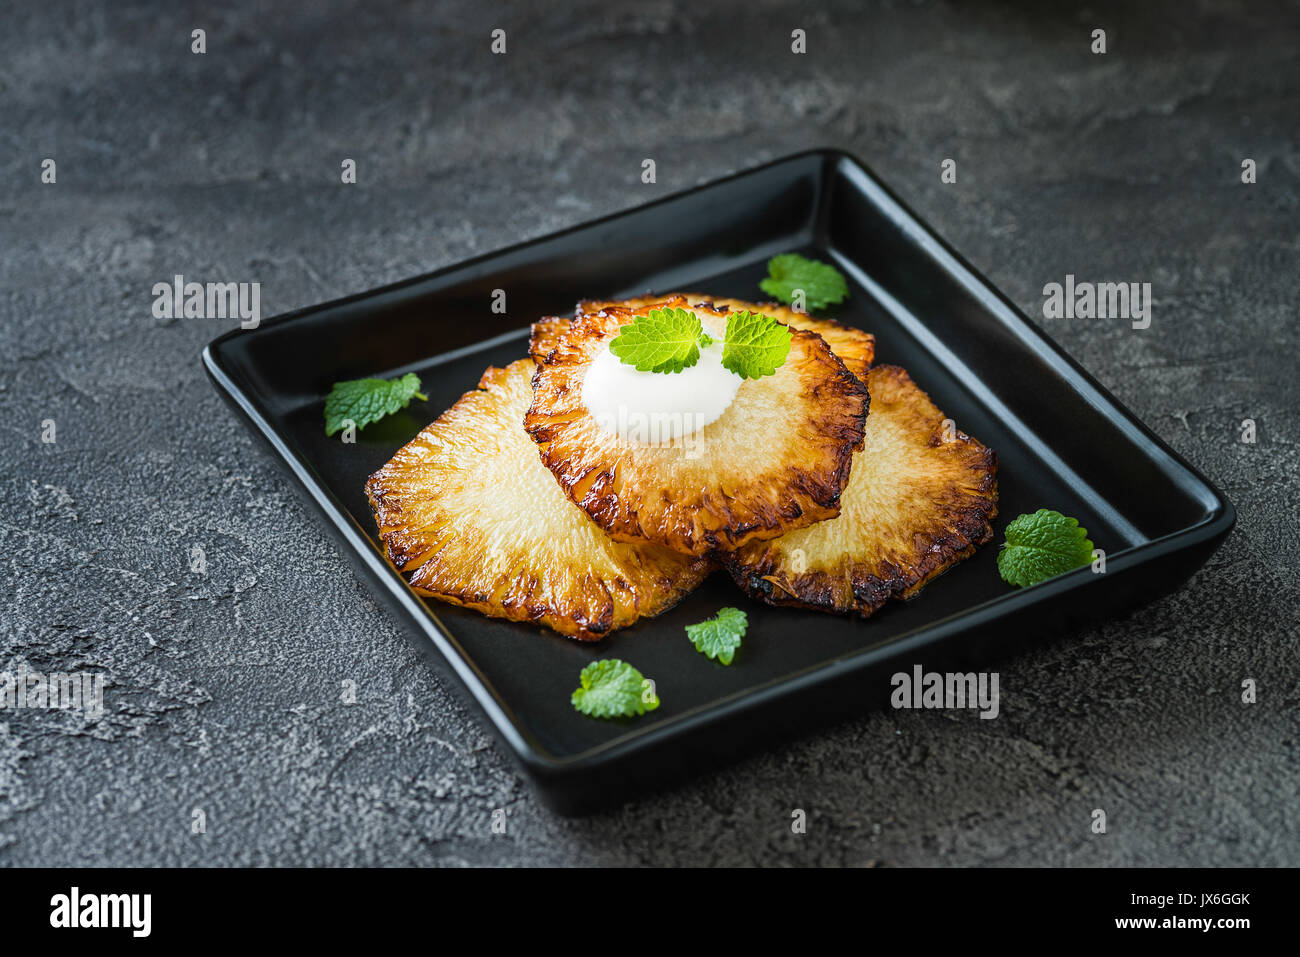 Fried pineapple slices with creme fraiche, mint in black square plate on dark background - Stock Image